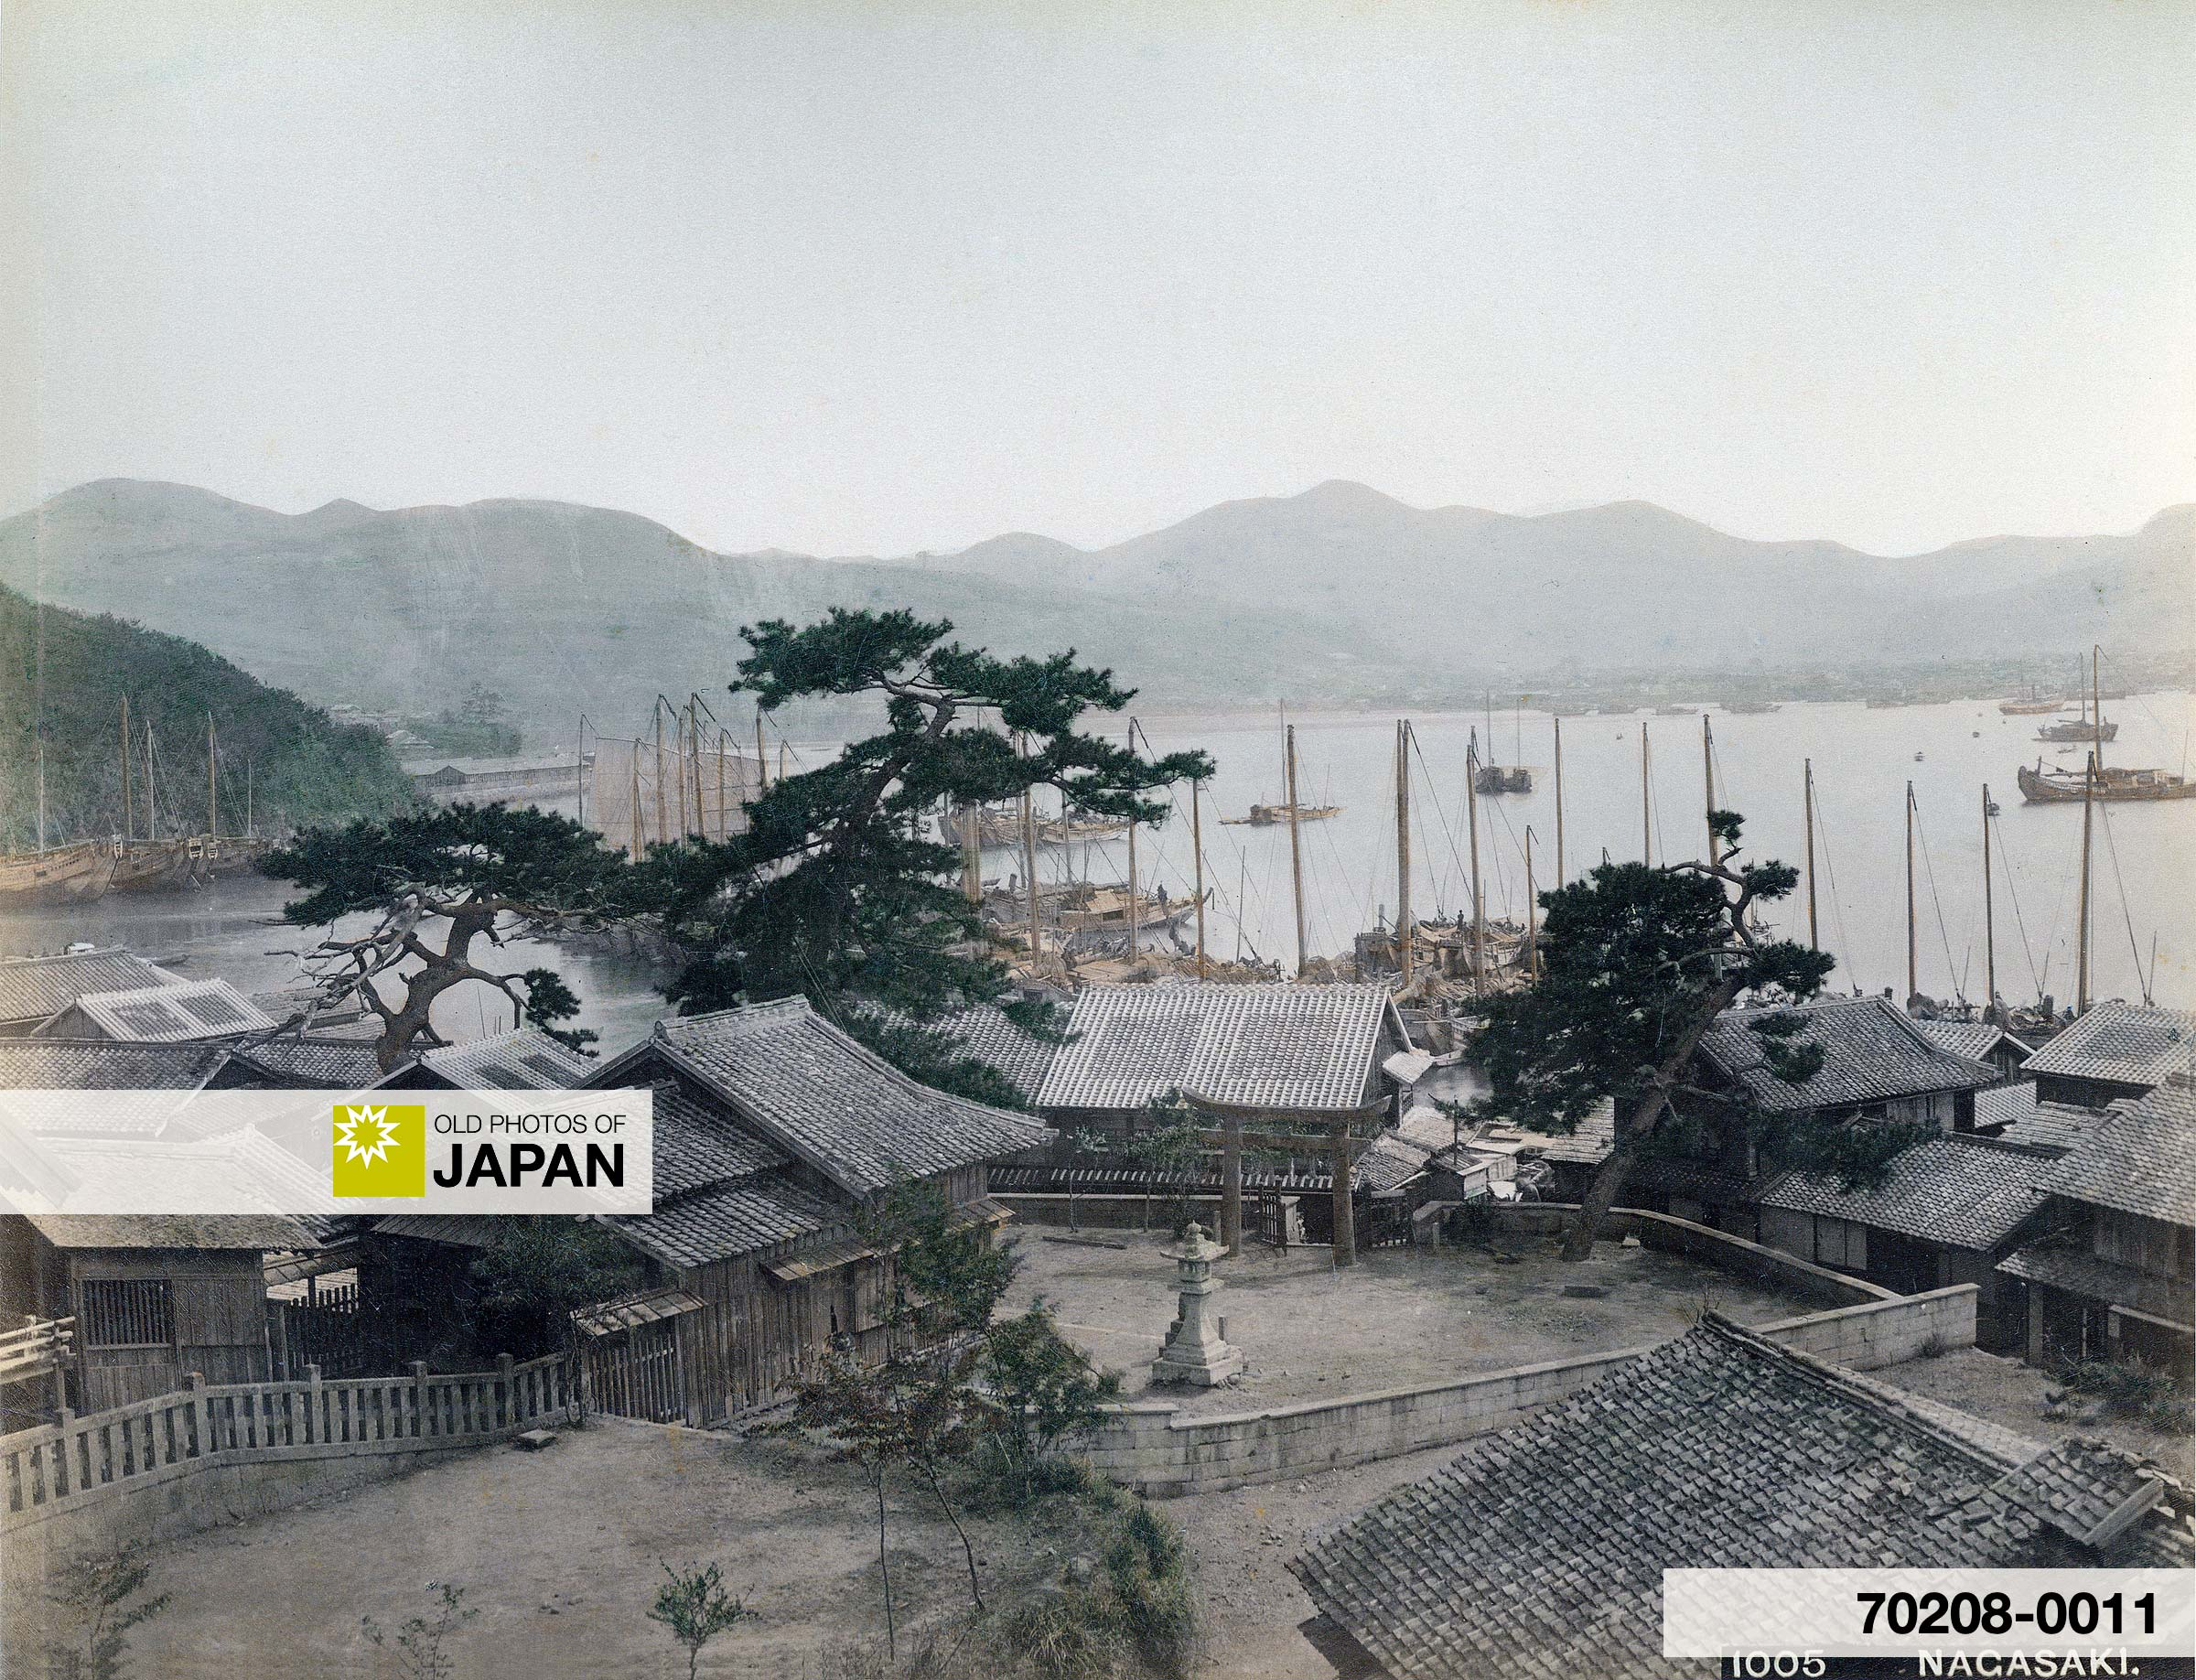 View on Harbor in Nagasaki